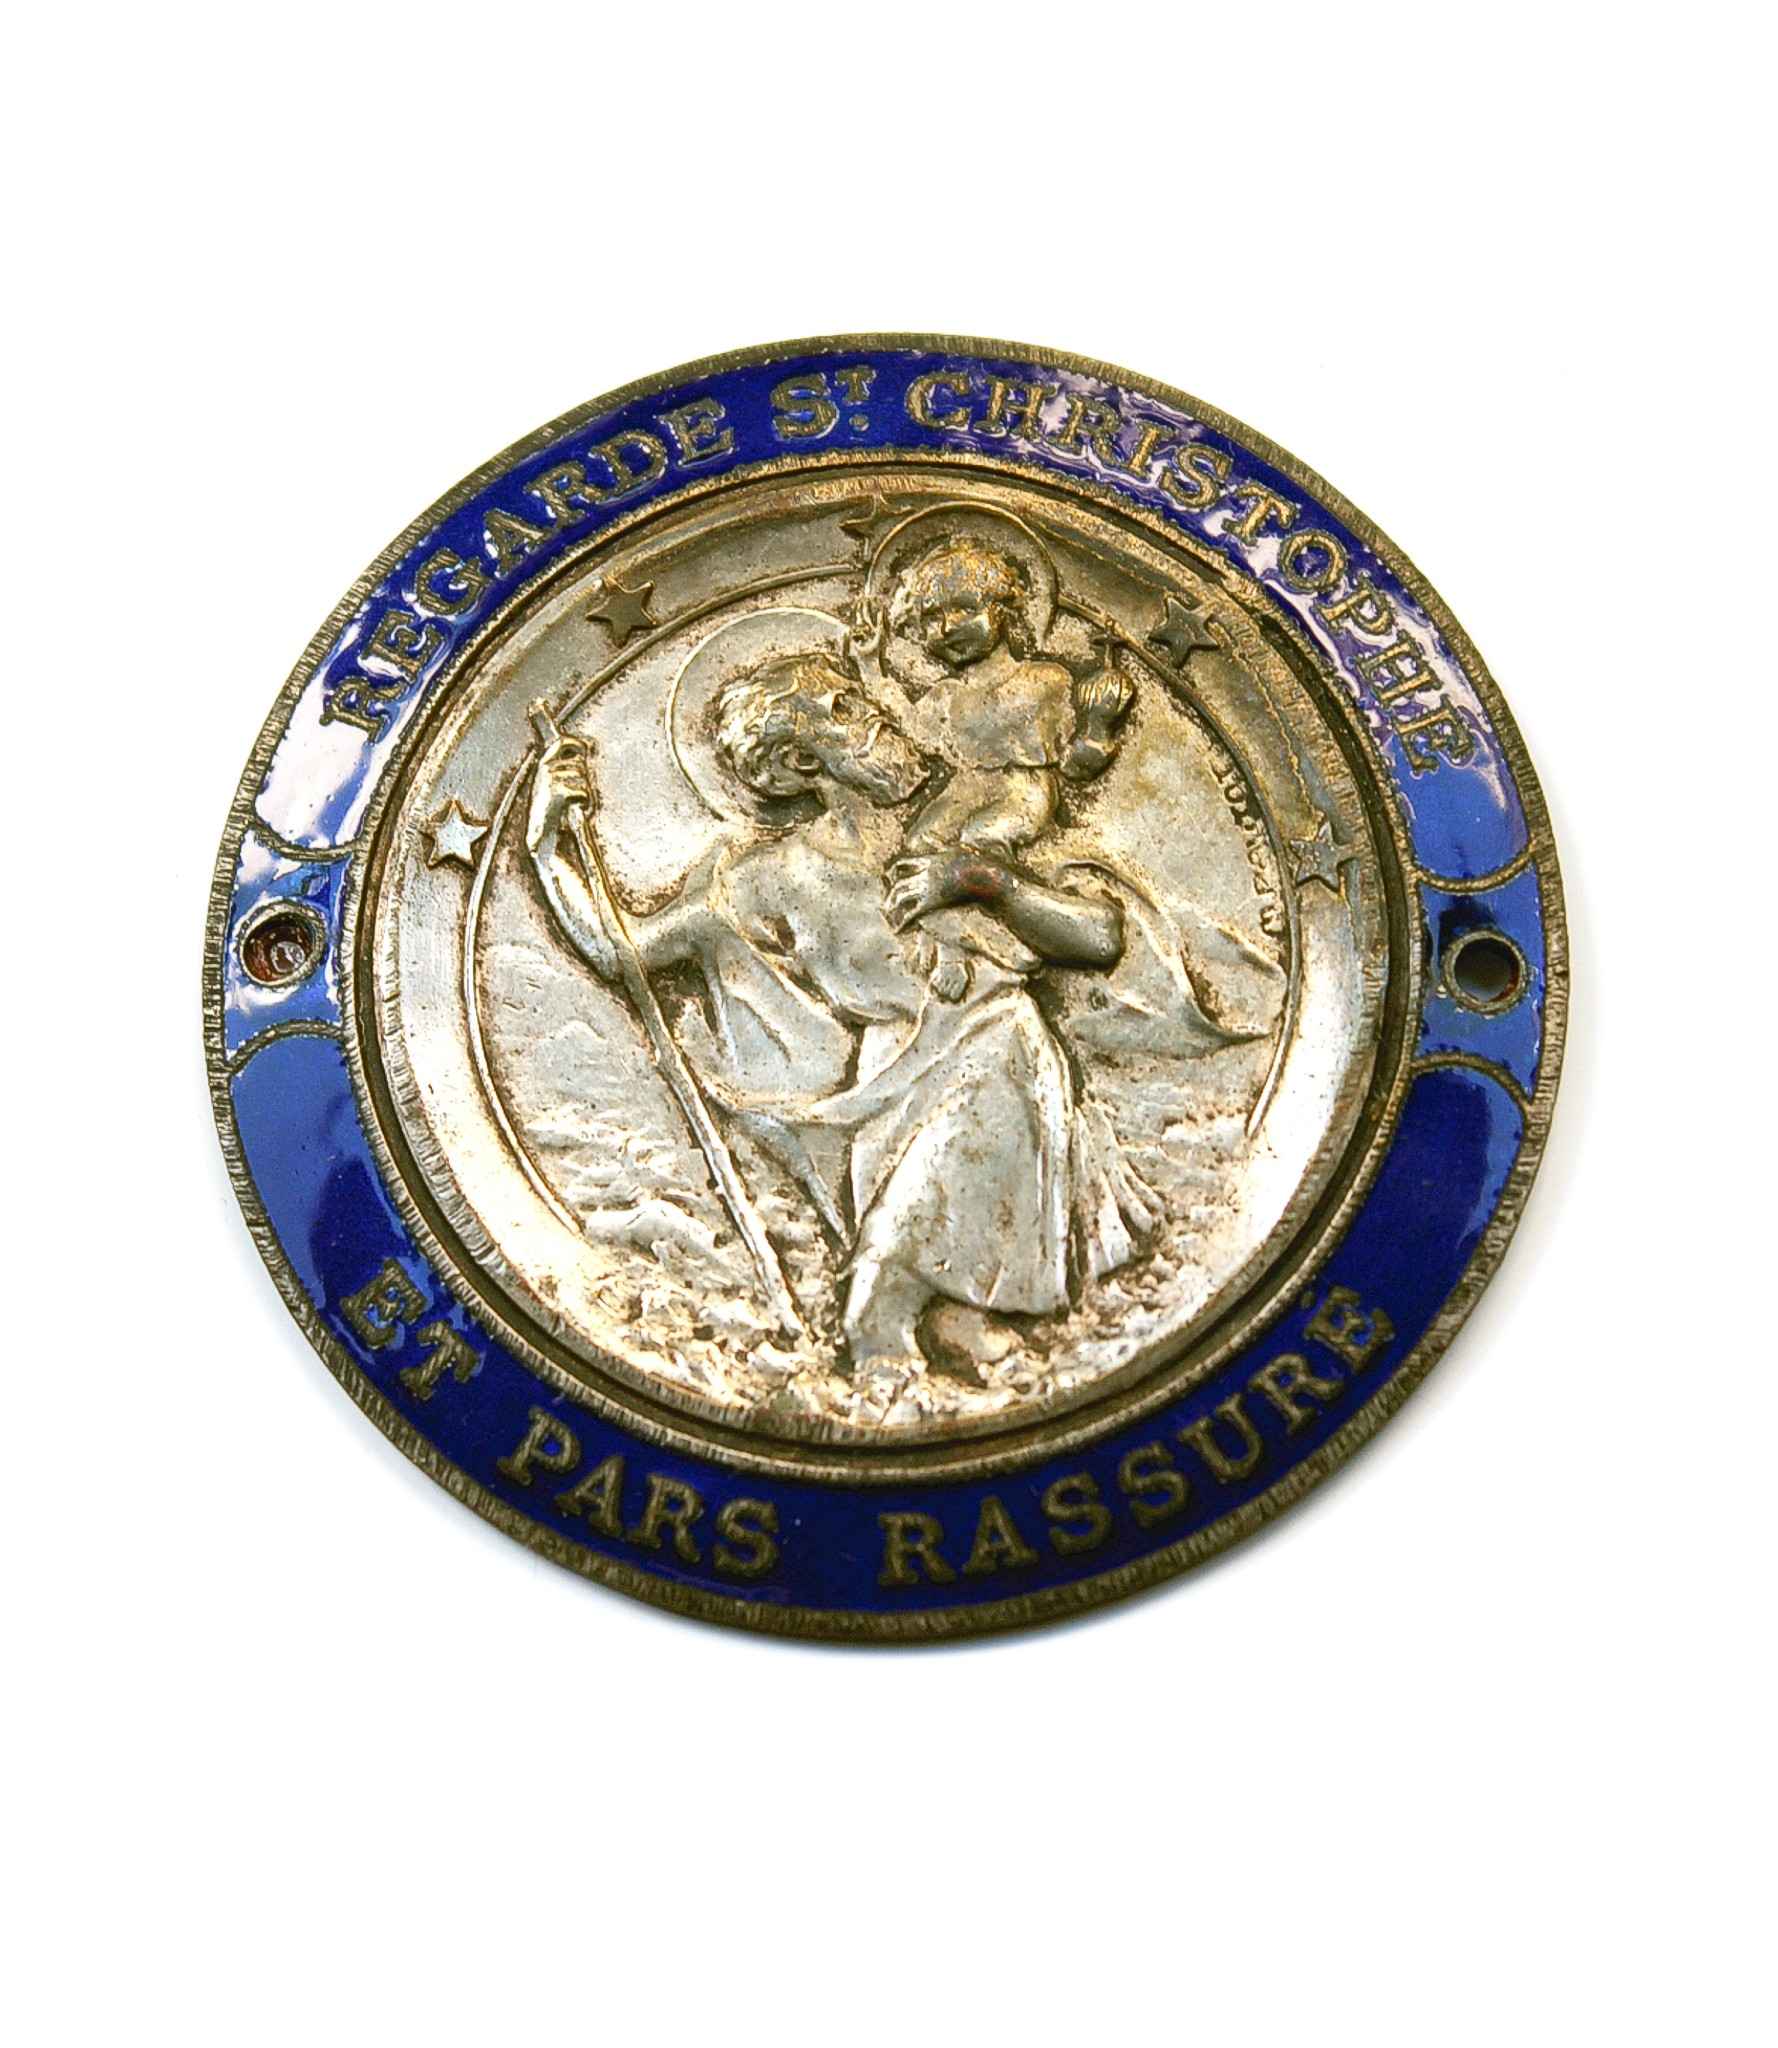 Enameled St.Christopher badge by Pautot